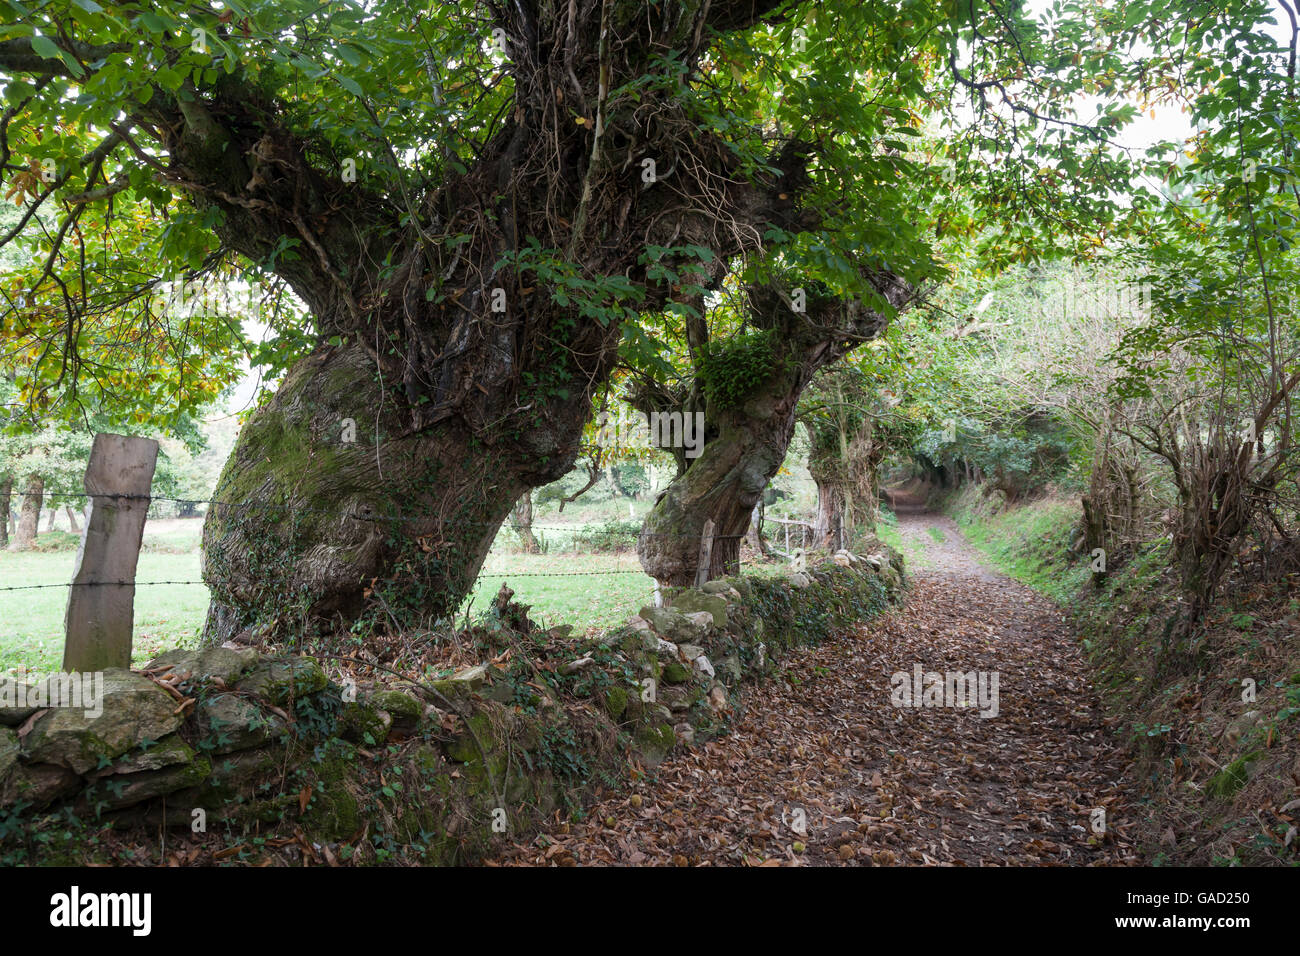 Province of Lugo, Spain: Sweet chestnut trees line the Camino Primitivo between the villages of Bacurín and - Stock Image